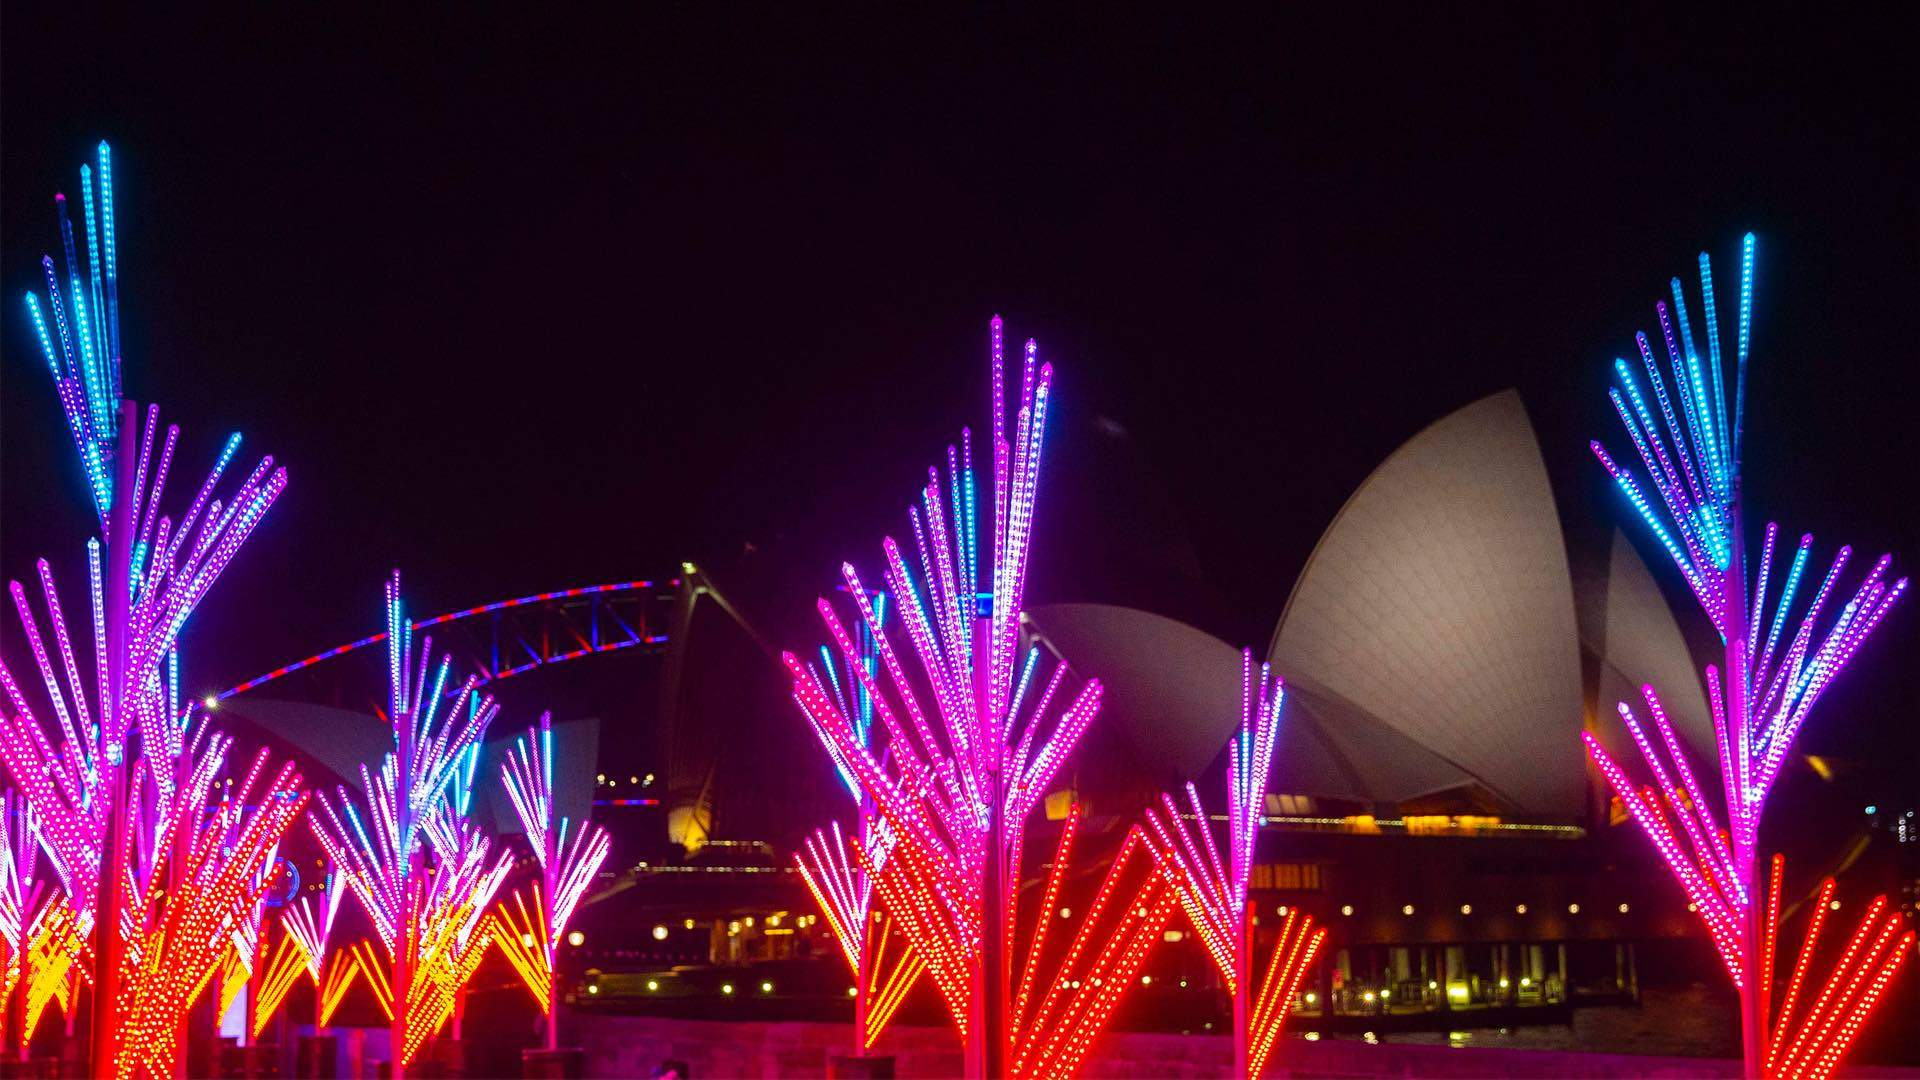 Sixteen Glowing Installations Have Popped Up in the Royal Botanic Garden for Vivid Sydney 2018